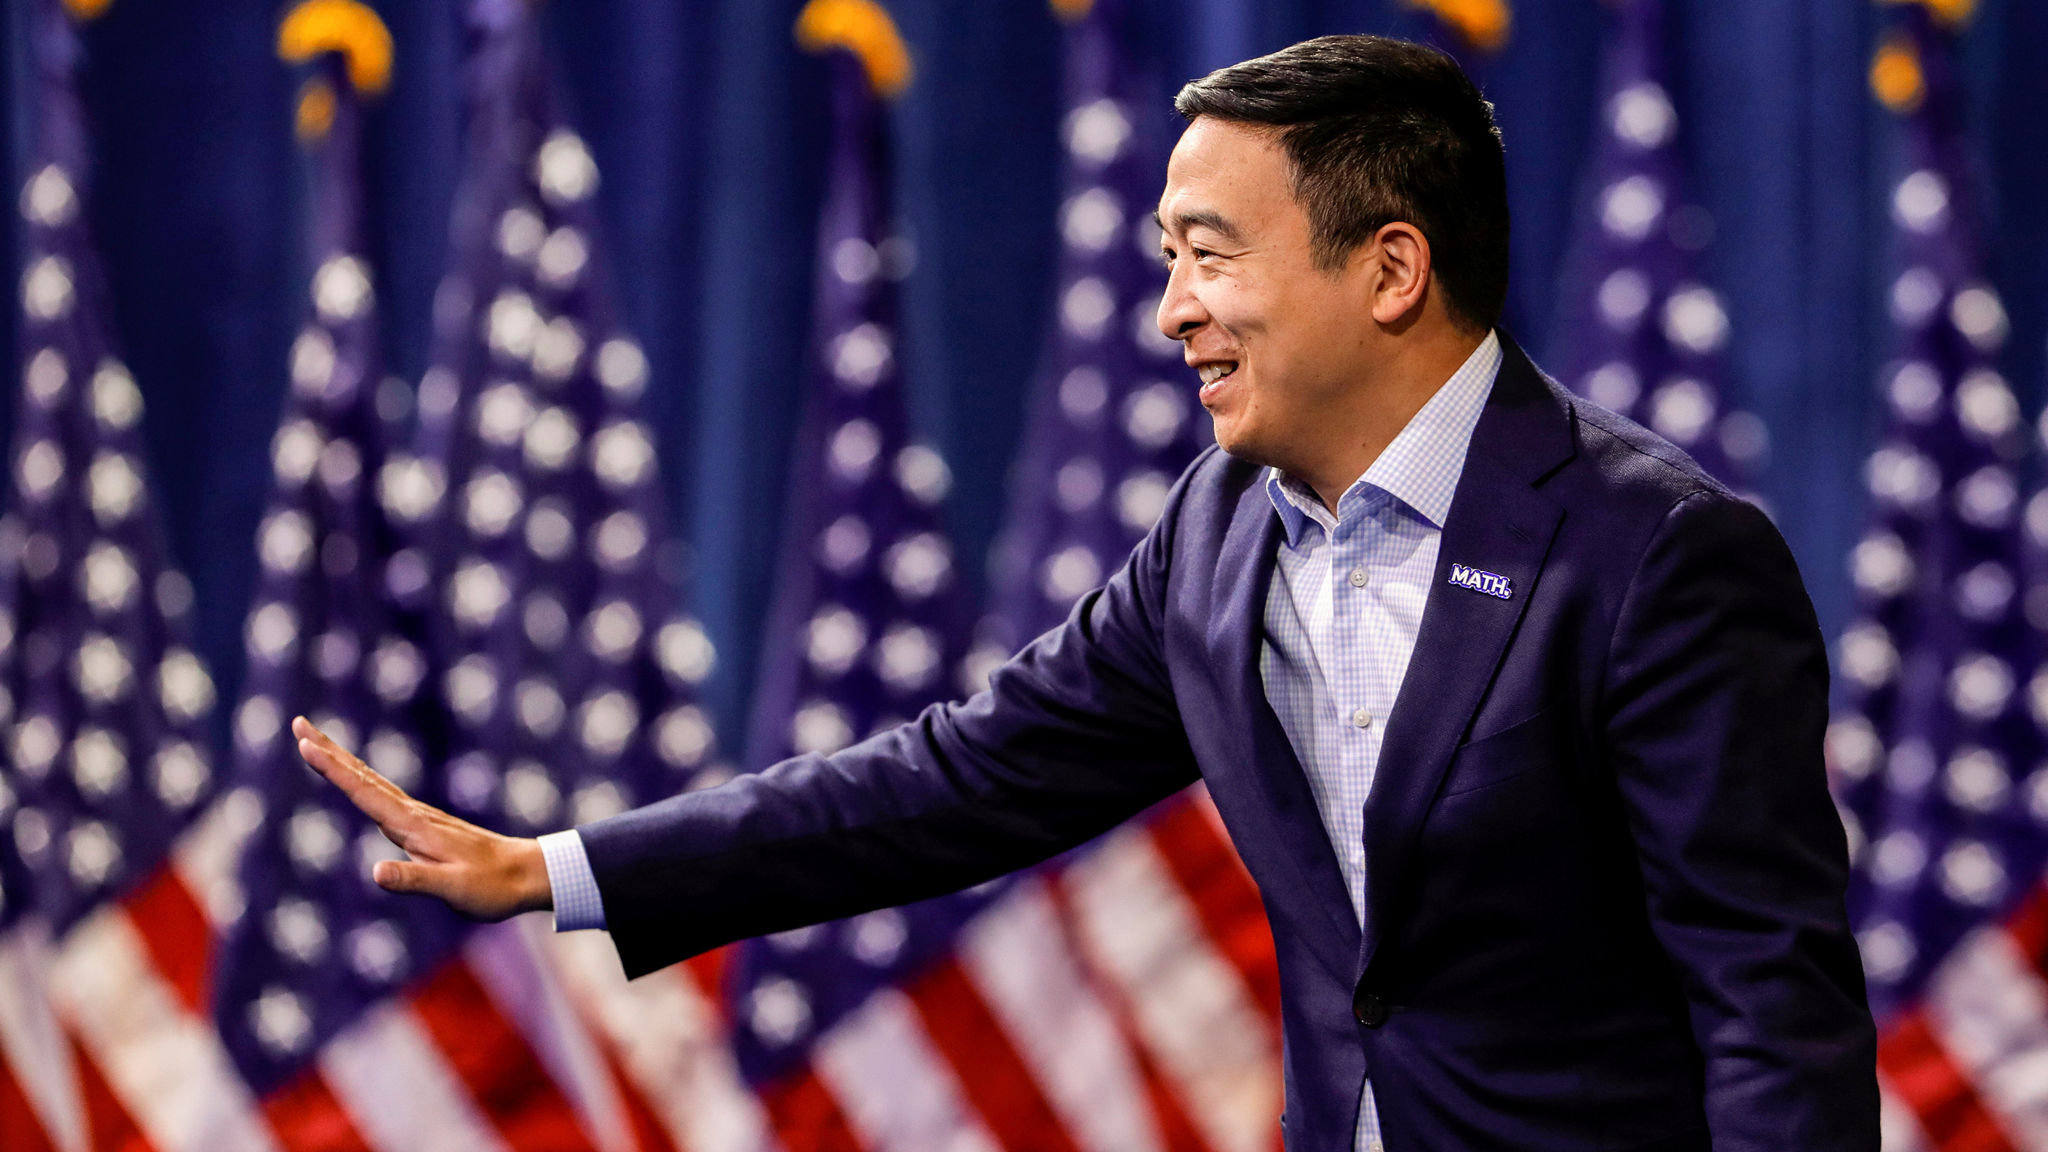 Andrew Yang: Asian American candidate does the maths to enter White House